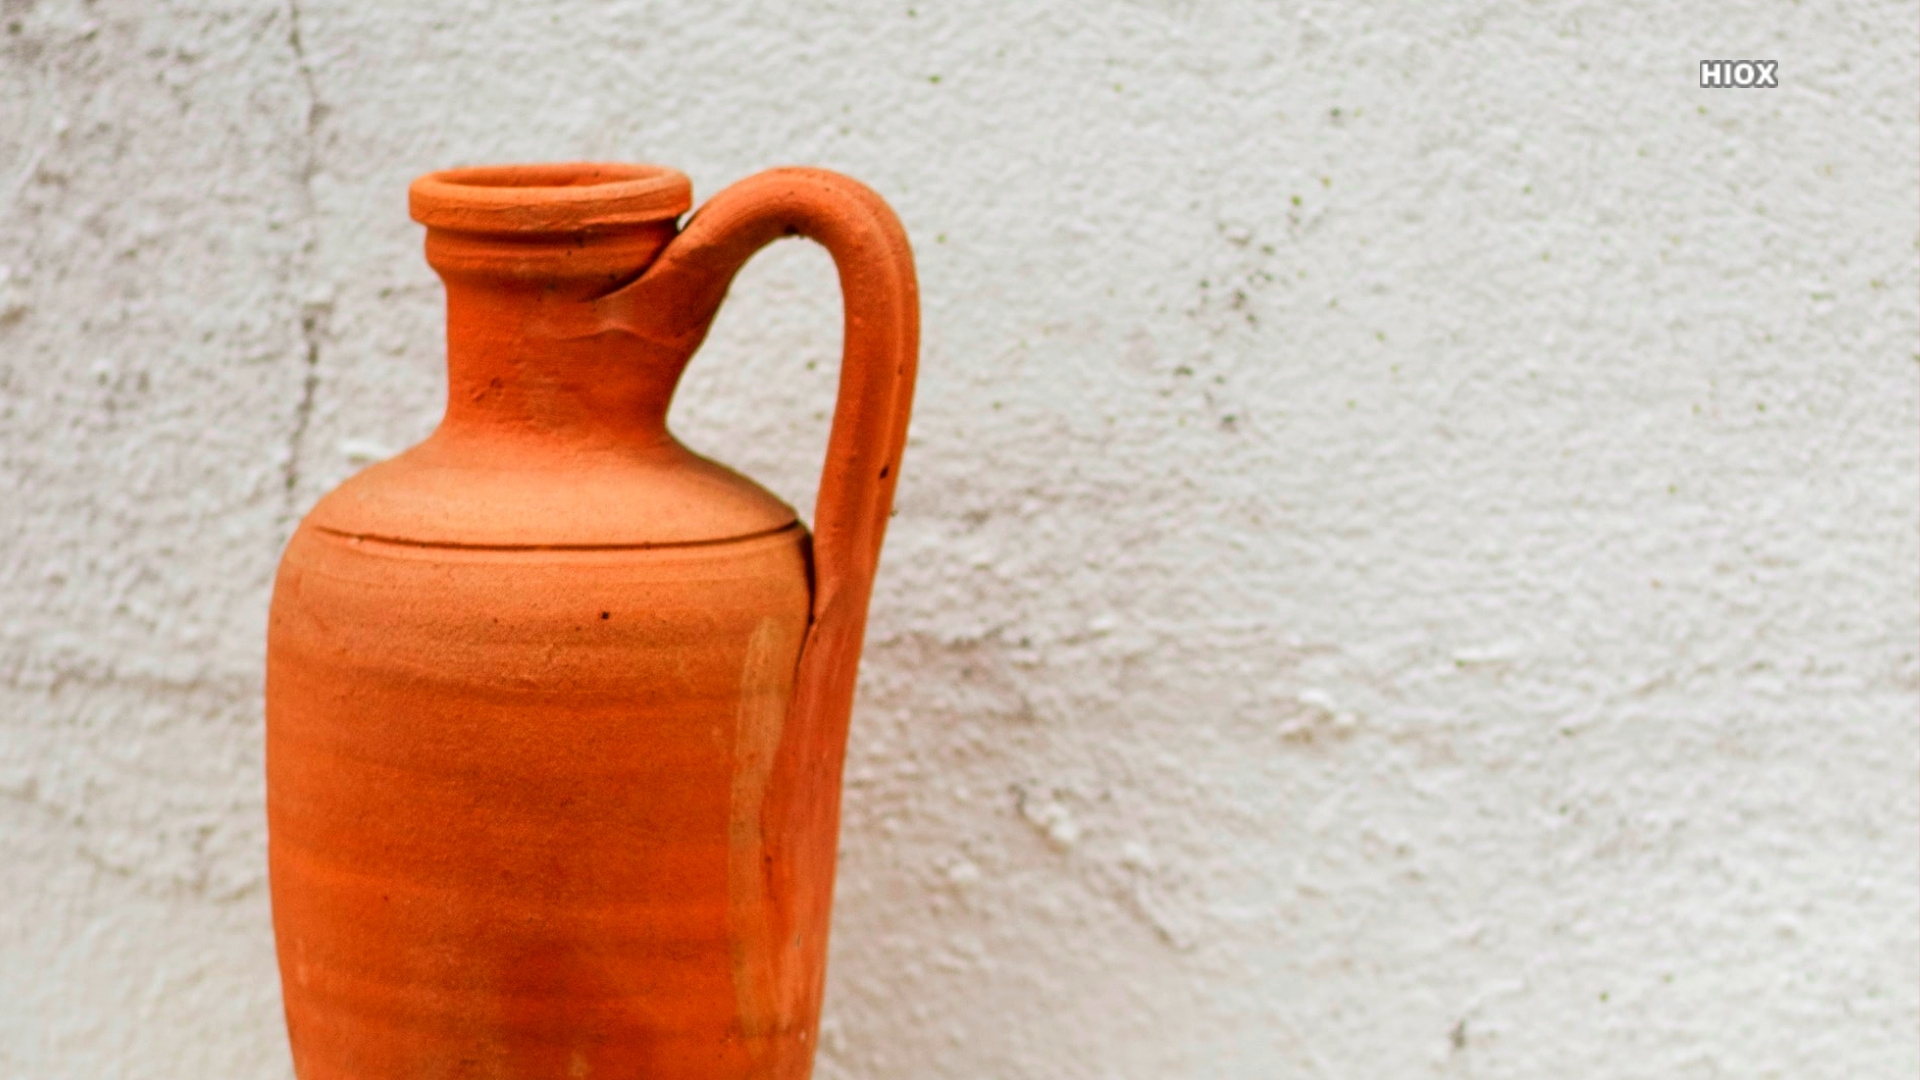 Clay Vase On White Concrete Background Hd Image